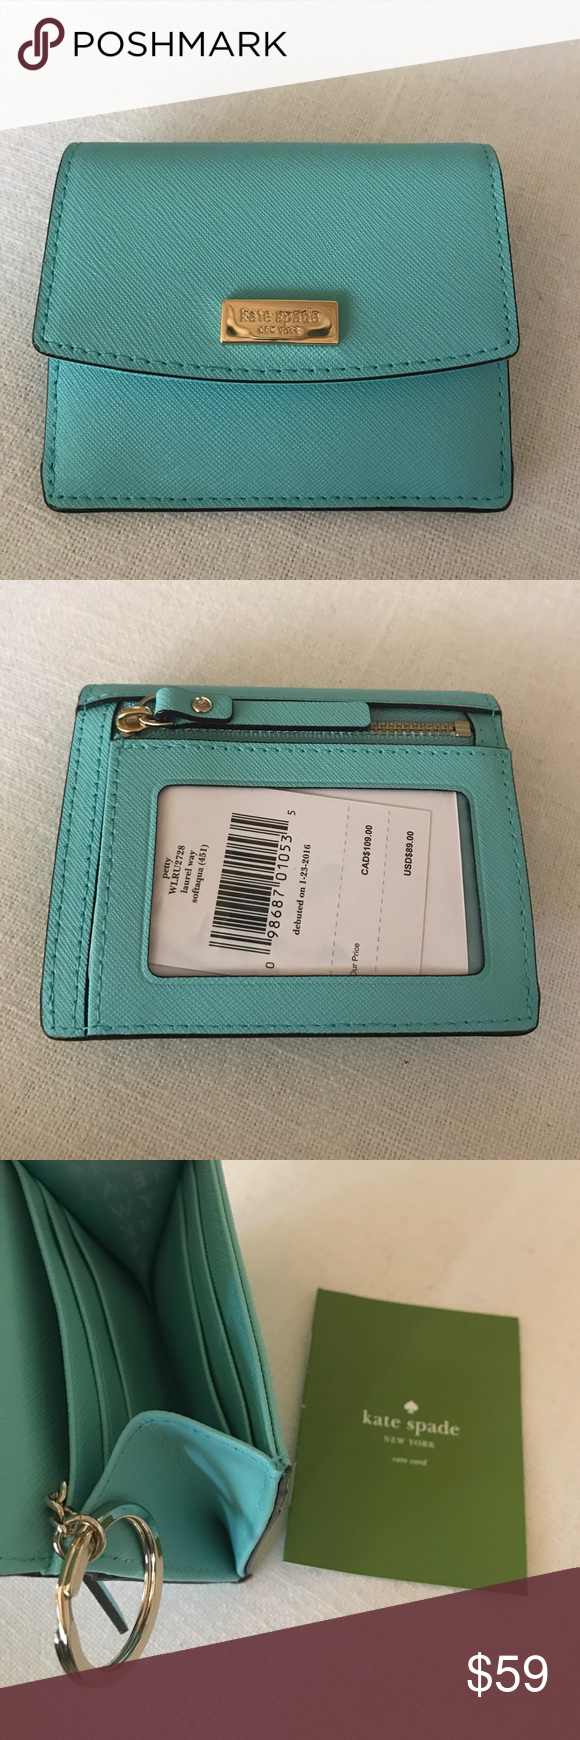 ada07811ac8f7 Kate Spade Petty Laurel Way Wallet Card Case Kate Spade Petty Laurel Way  Wallet Card Case. NEW WITH TAGS! Back has zippered coin pocket and ID slot.